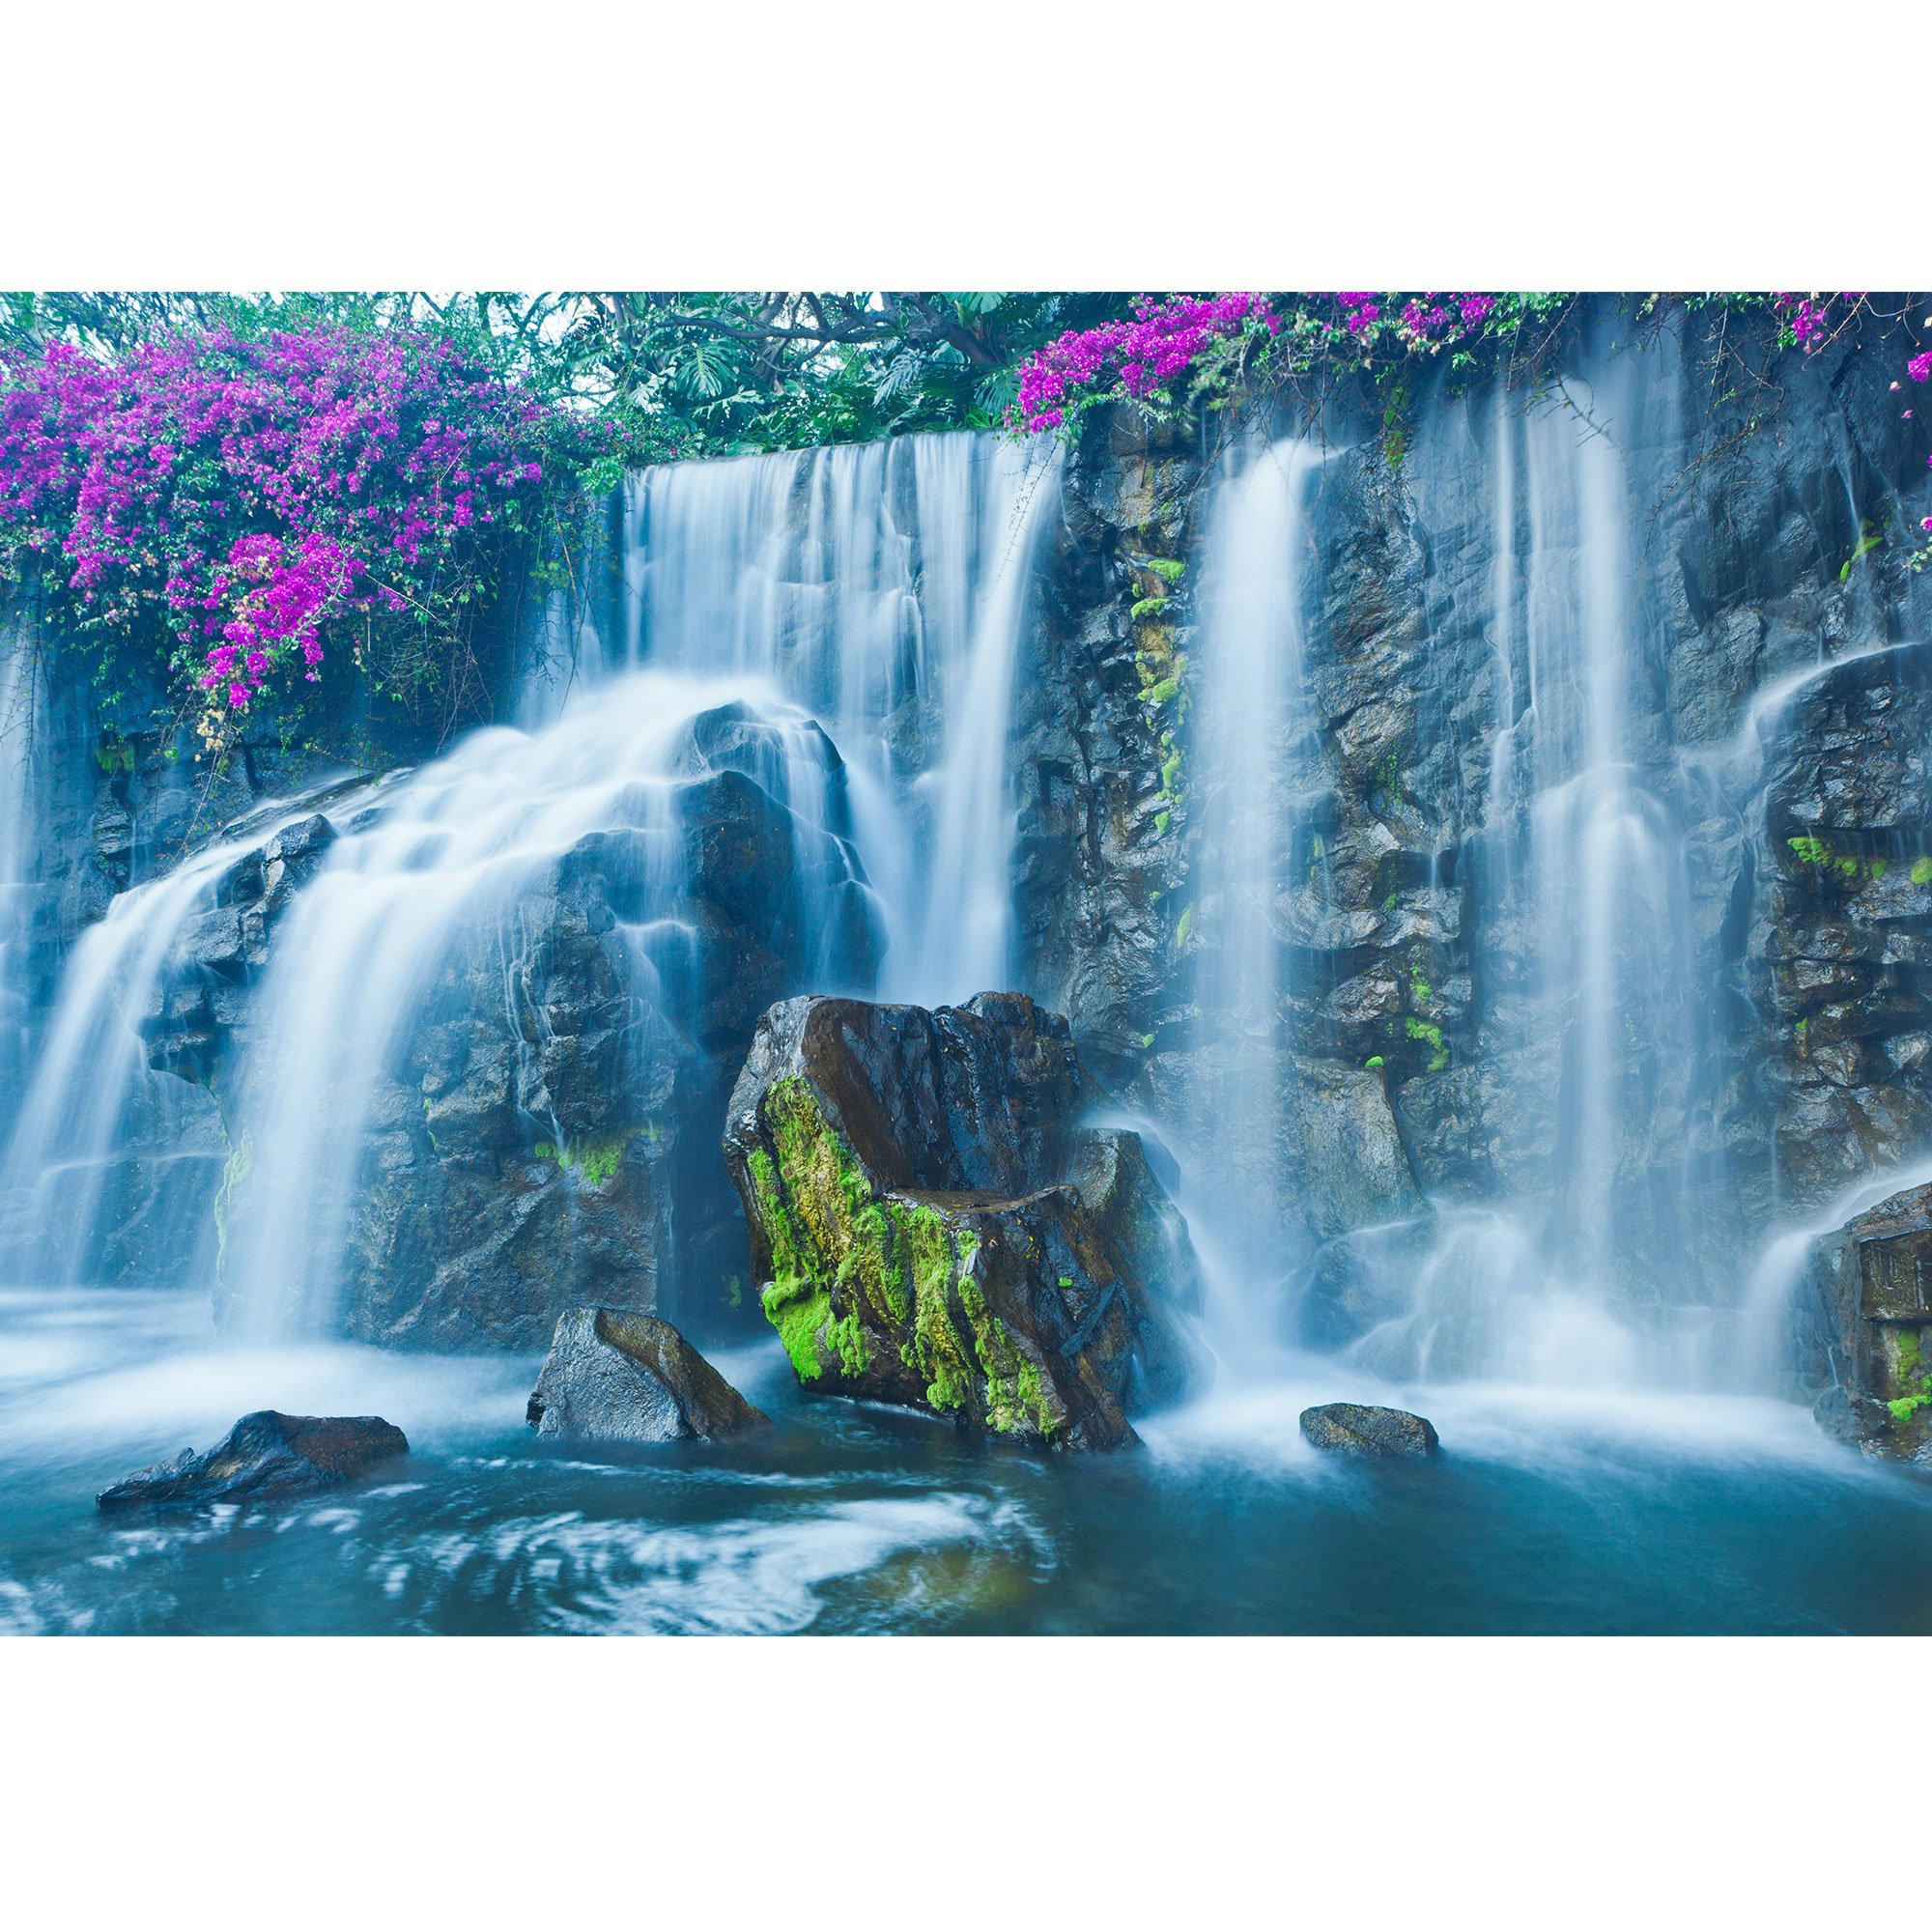 wall26 - Beautiful Blue Waterfall in Hawaii - Removable Wall Mural | Self-Adhesive Large Wallpaper - 100x144 inches by wall26 (Image #2)